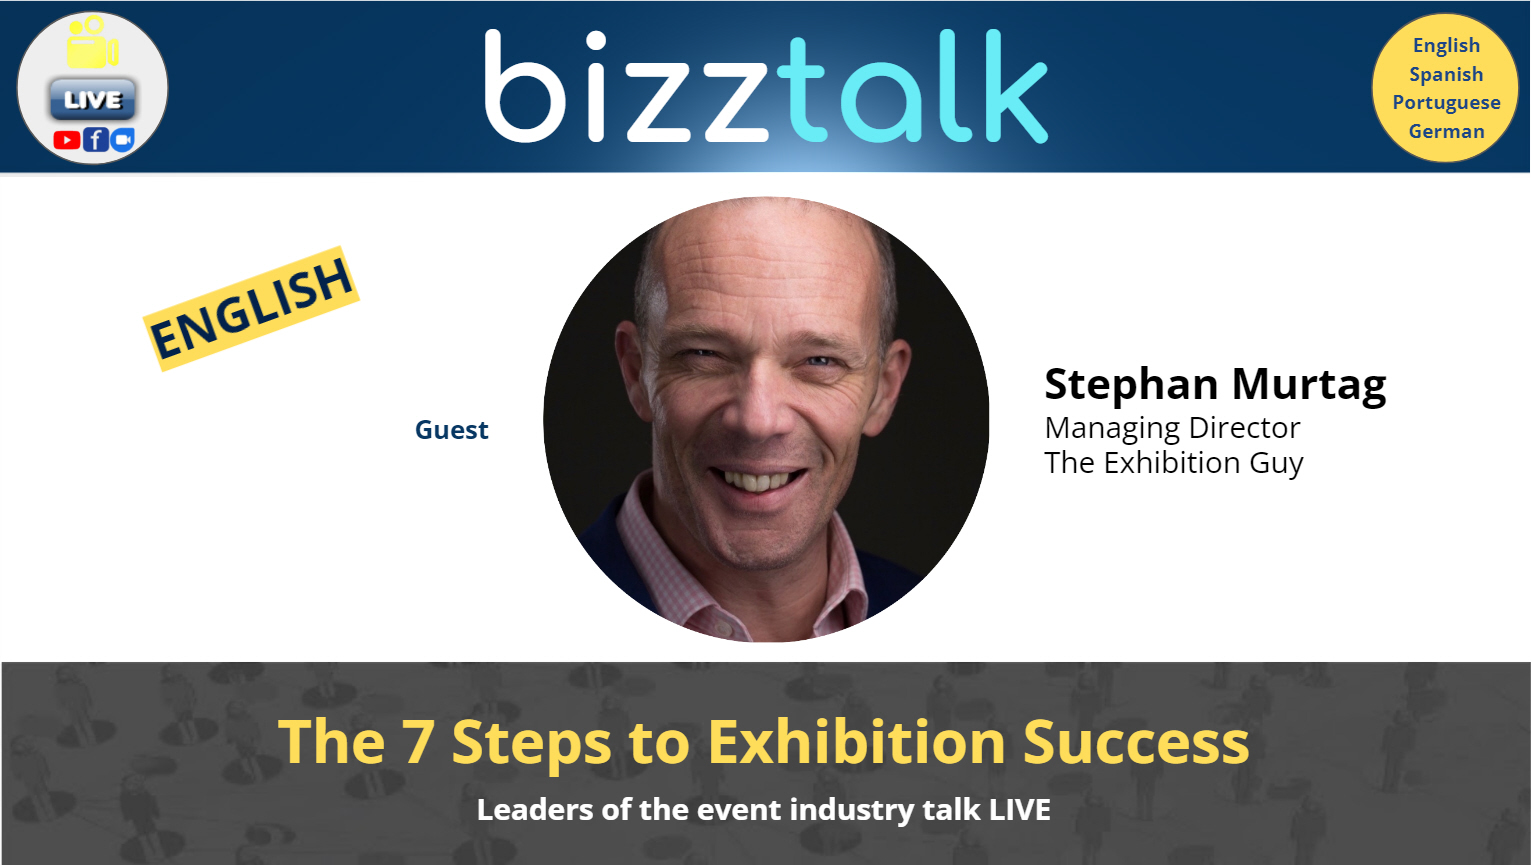 The 7 Steps to Exhibition Success